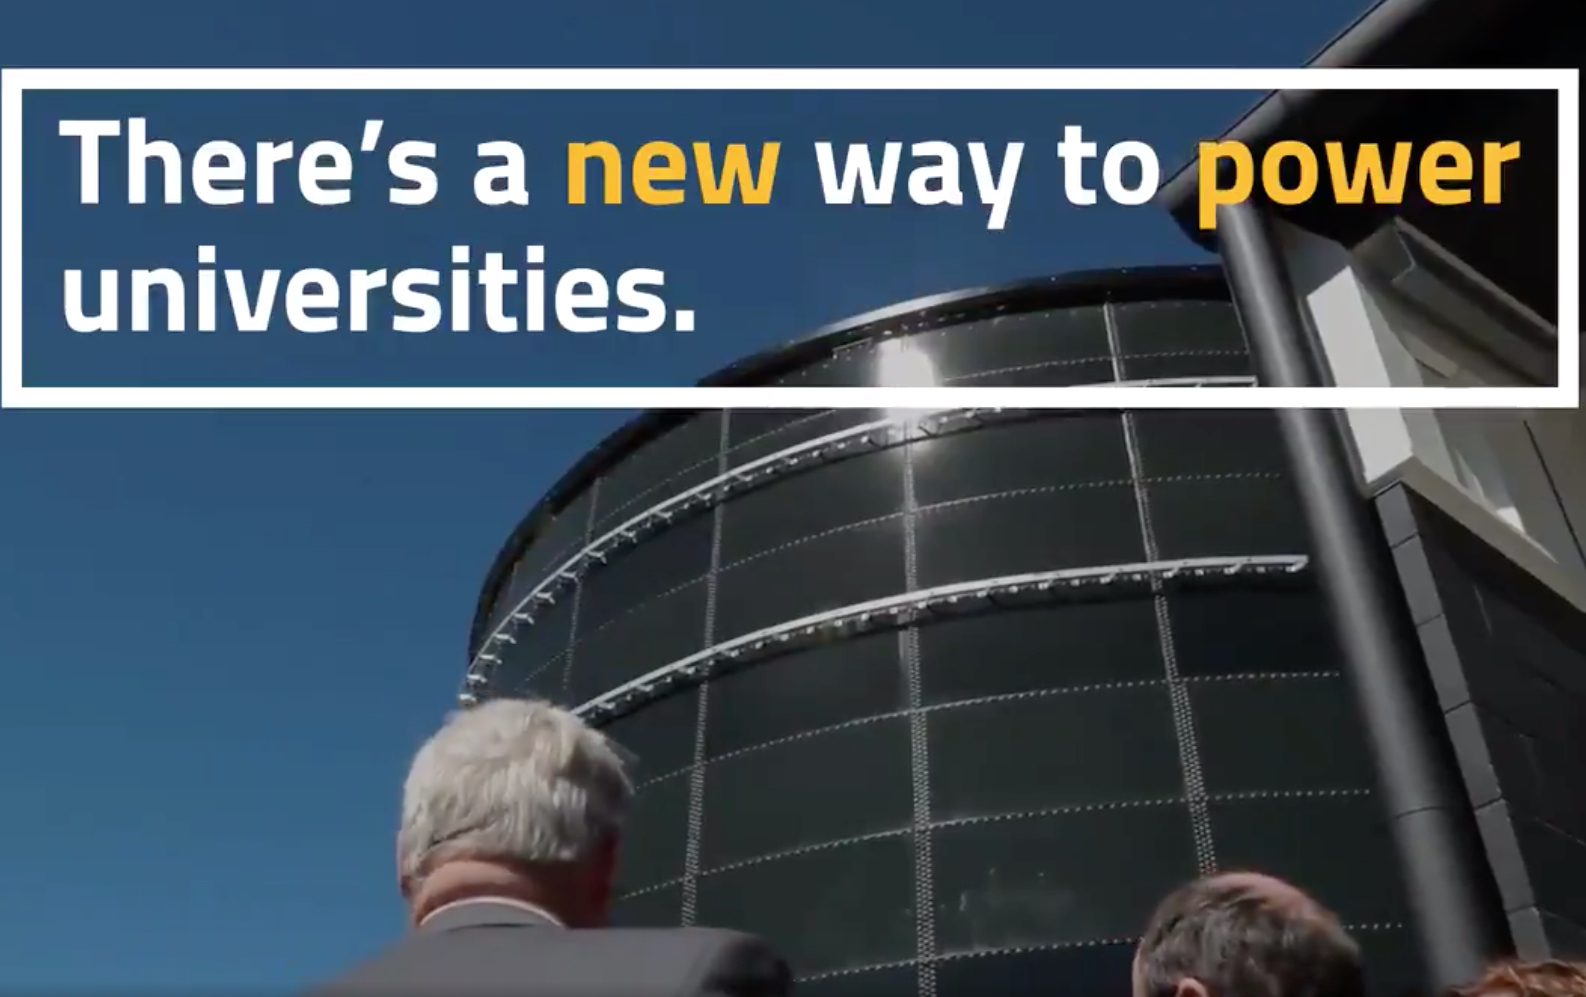 The three-storey tower, dubbed the 'Water Battery', shown in a promo by the University. Image: USC promo video screenshotted via Twitter.